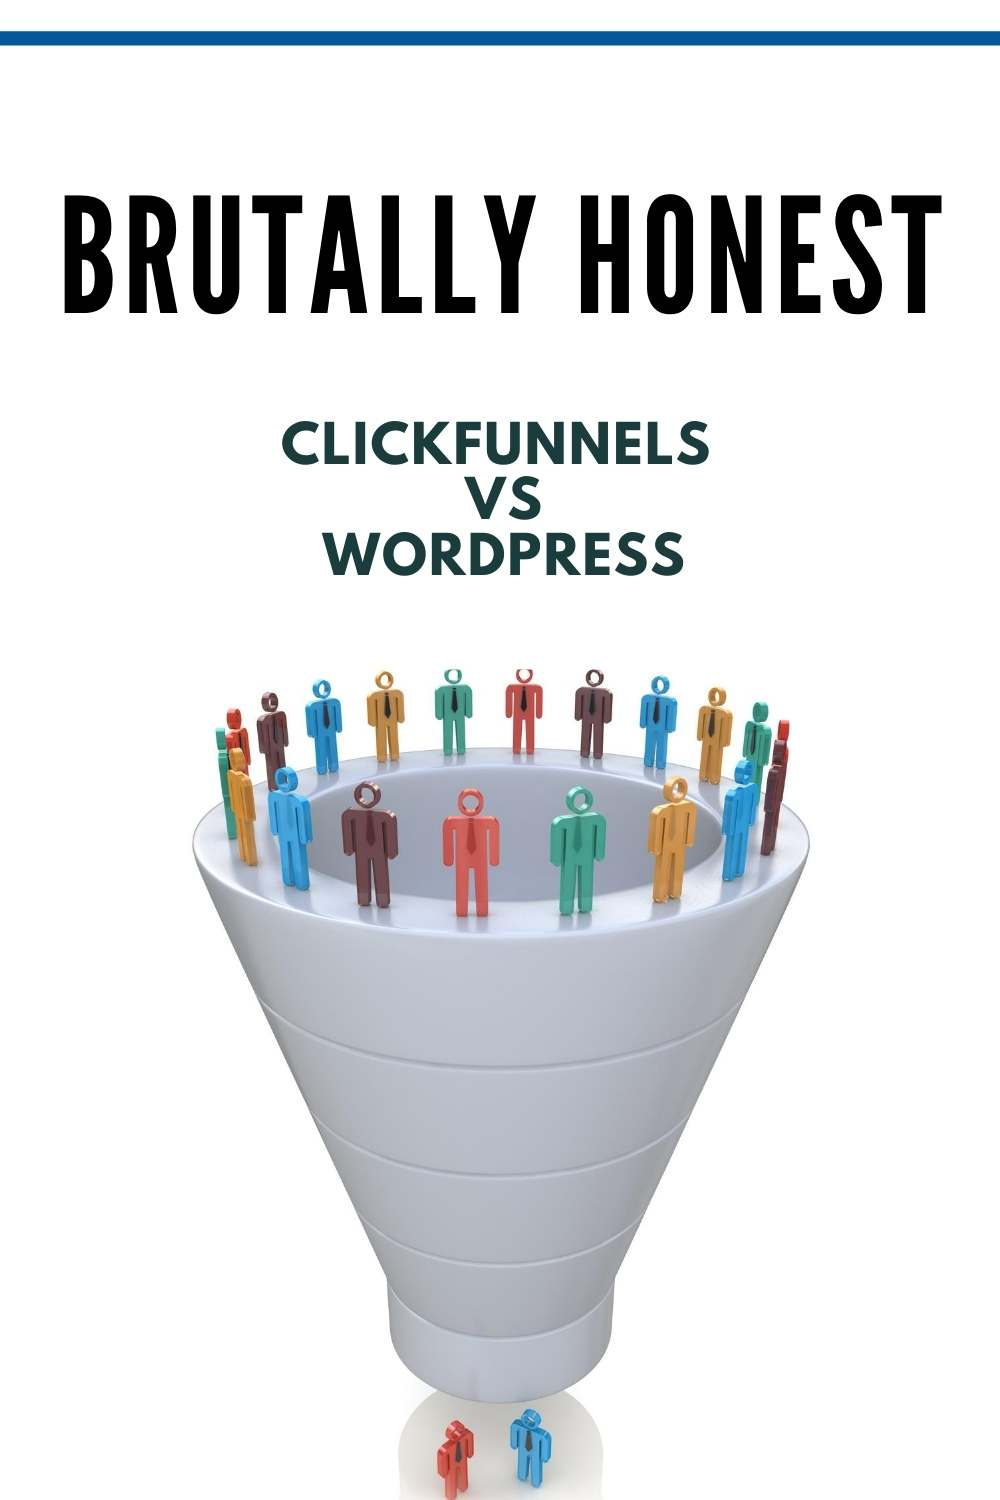 clickfunnels vs wordpress comparision